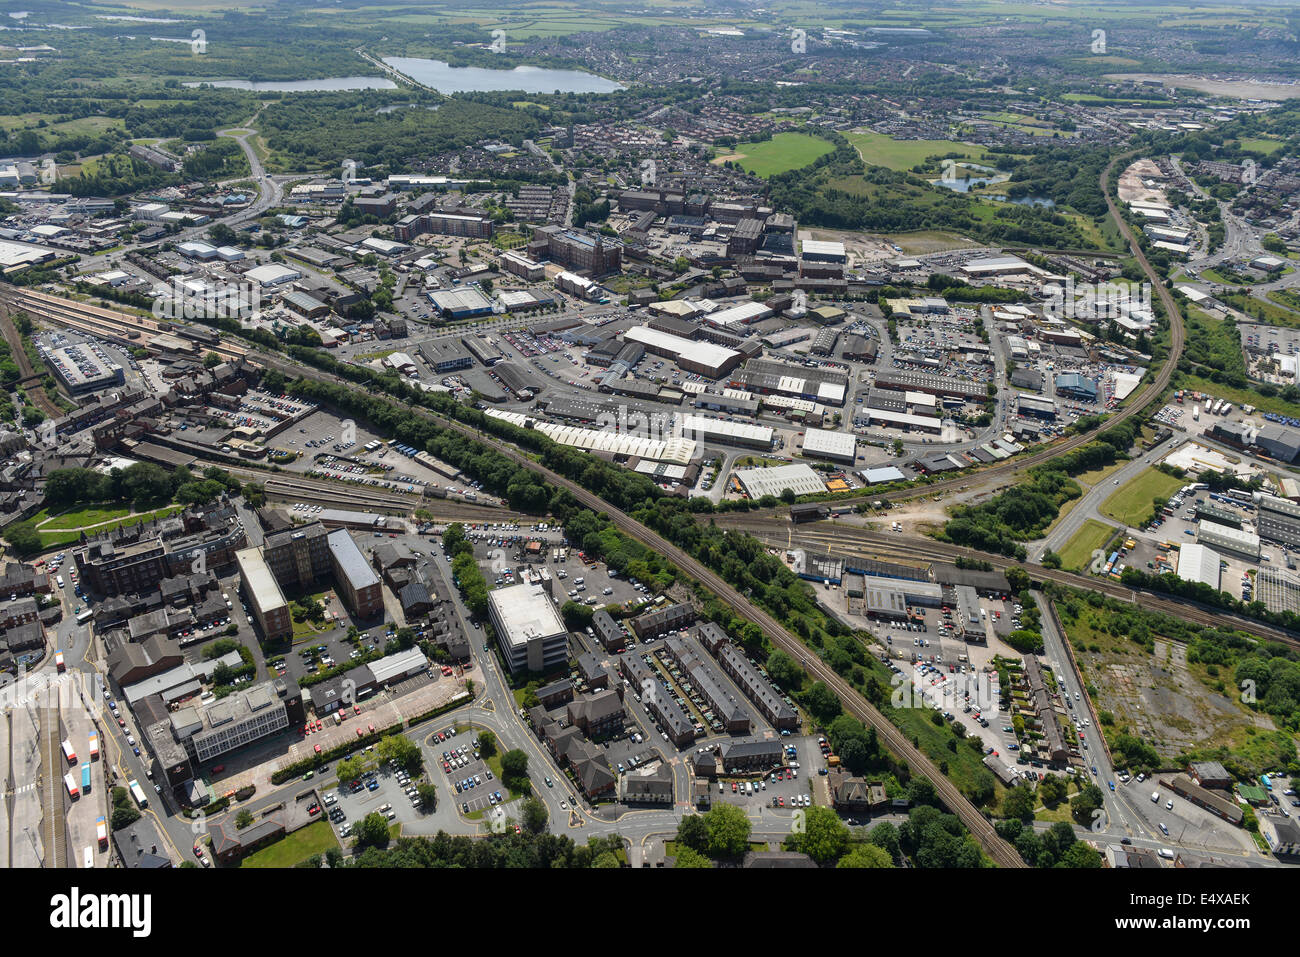 An aerial view of Wigan showing industrial areas and the railway around the town centre. - Stock Image